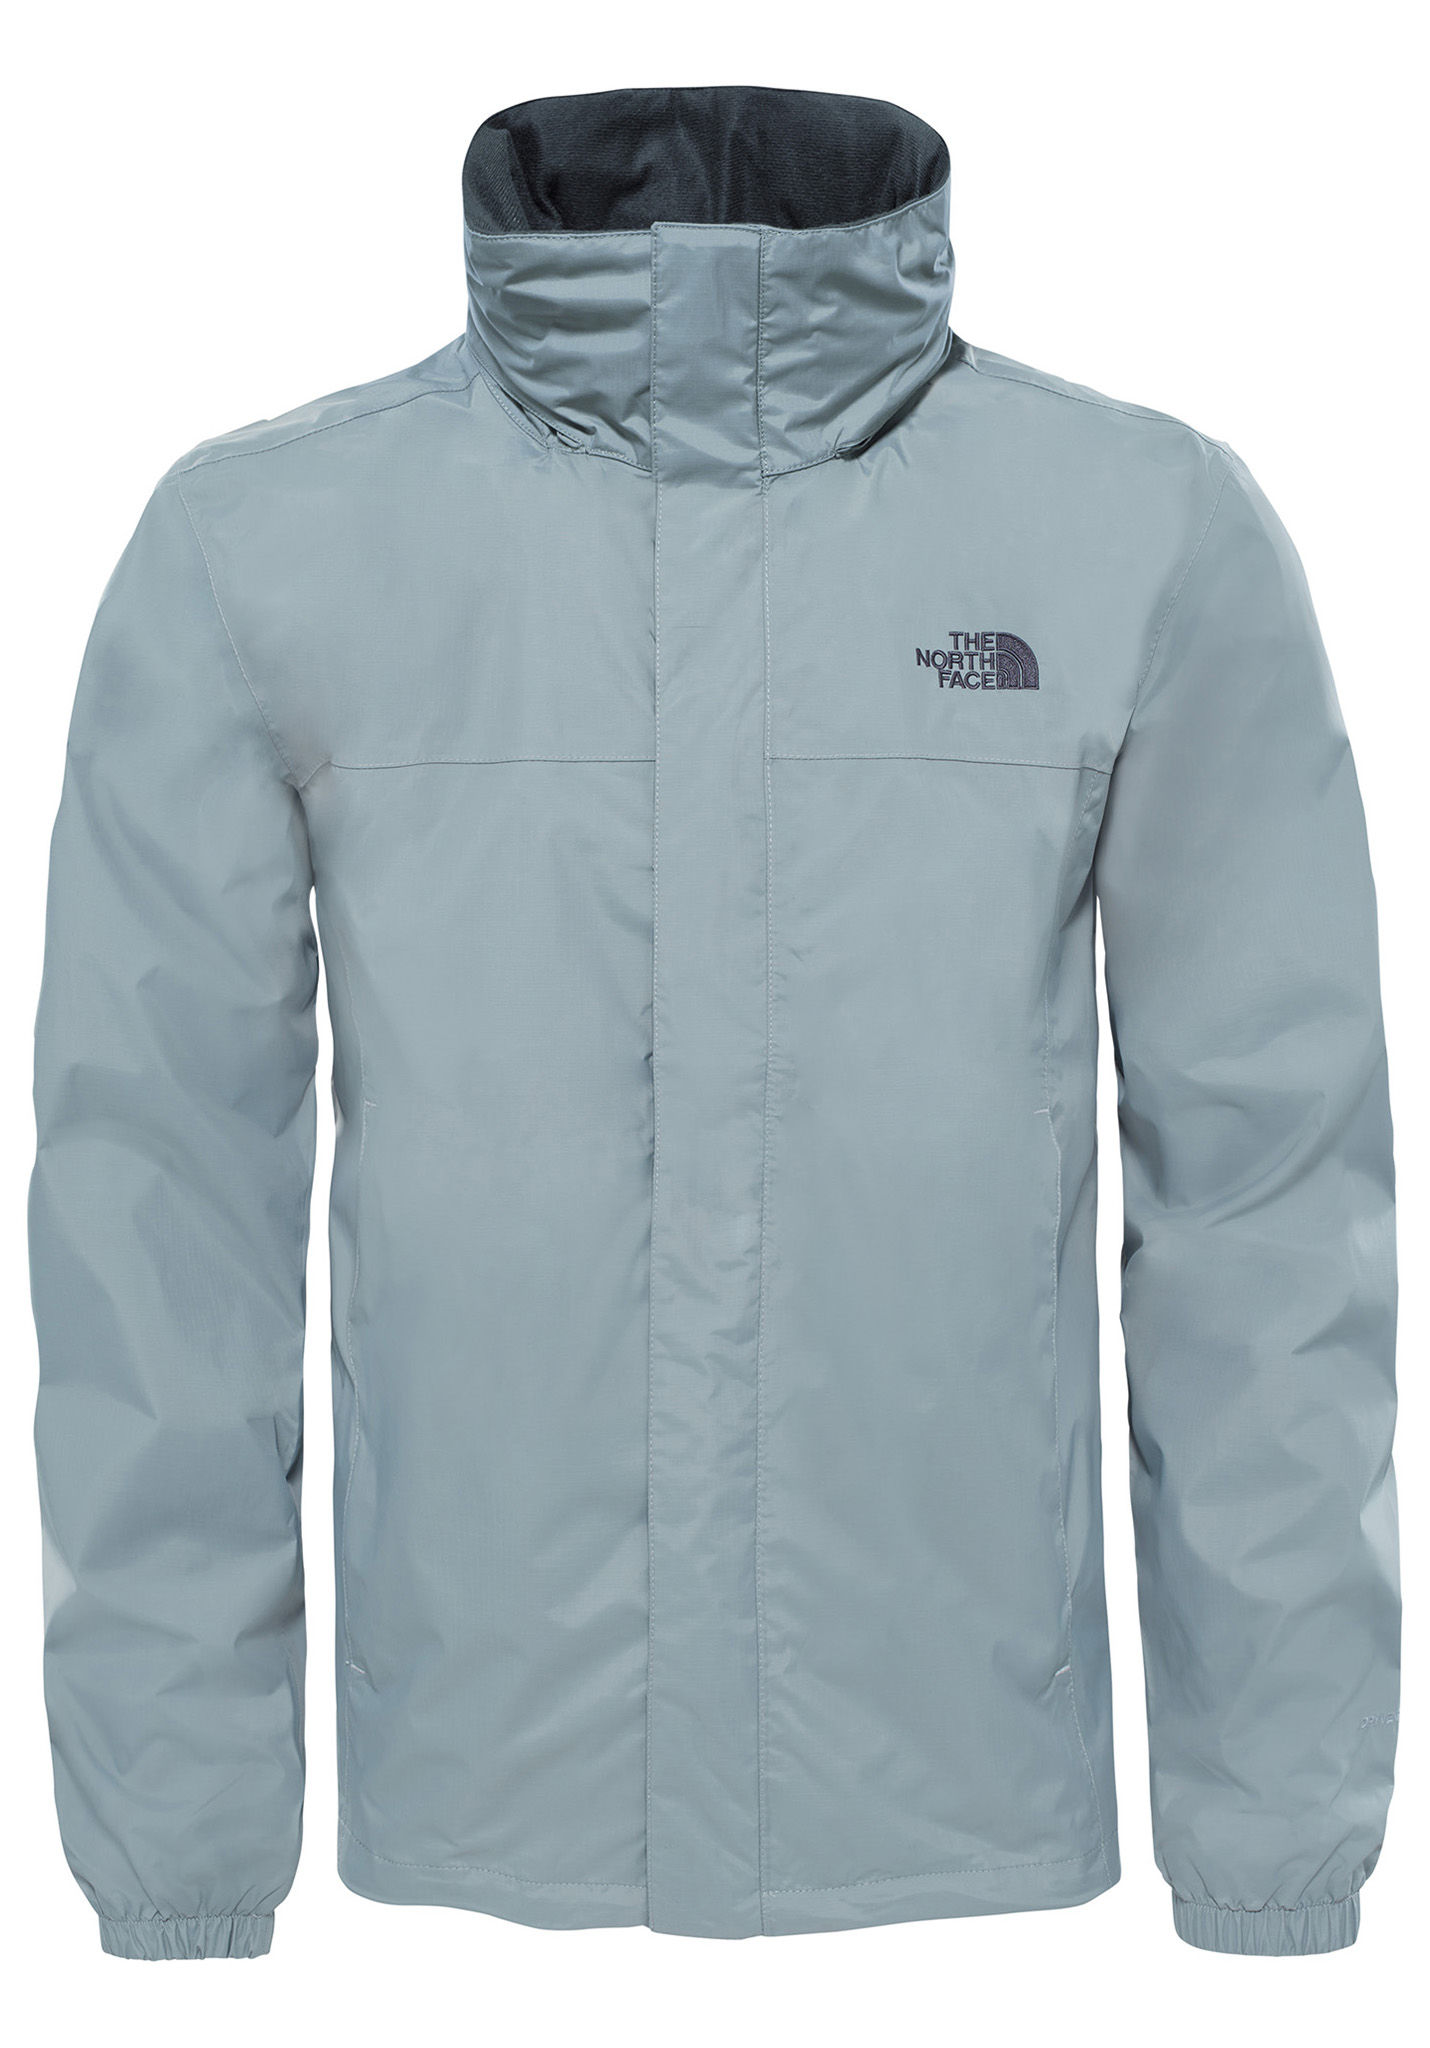 Resolve Tecnica Uomo 2 Grigio North Face The Planet Giacca Per ZEqwaxcB